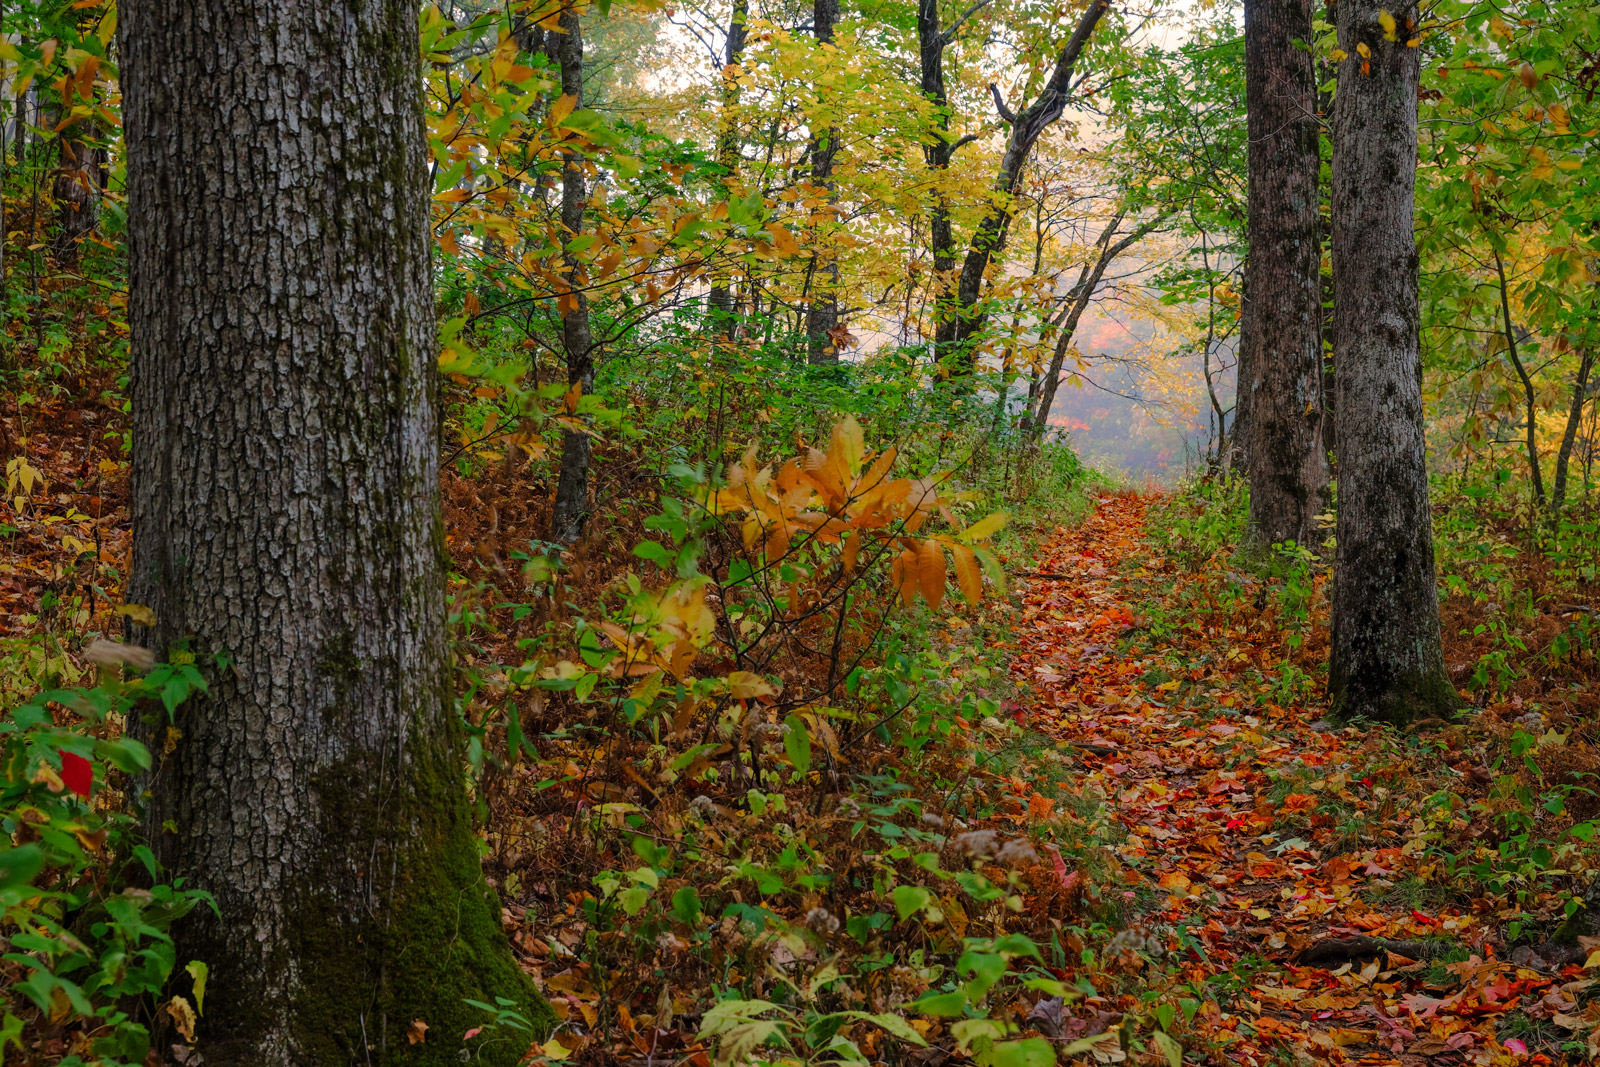 A Limited Edition, Fine Art photograph from the Appalachian trail where it is about to emerge from the forest in the fall in...